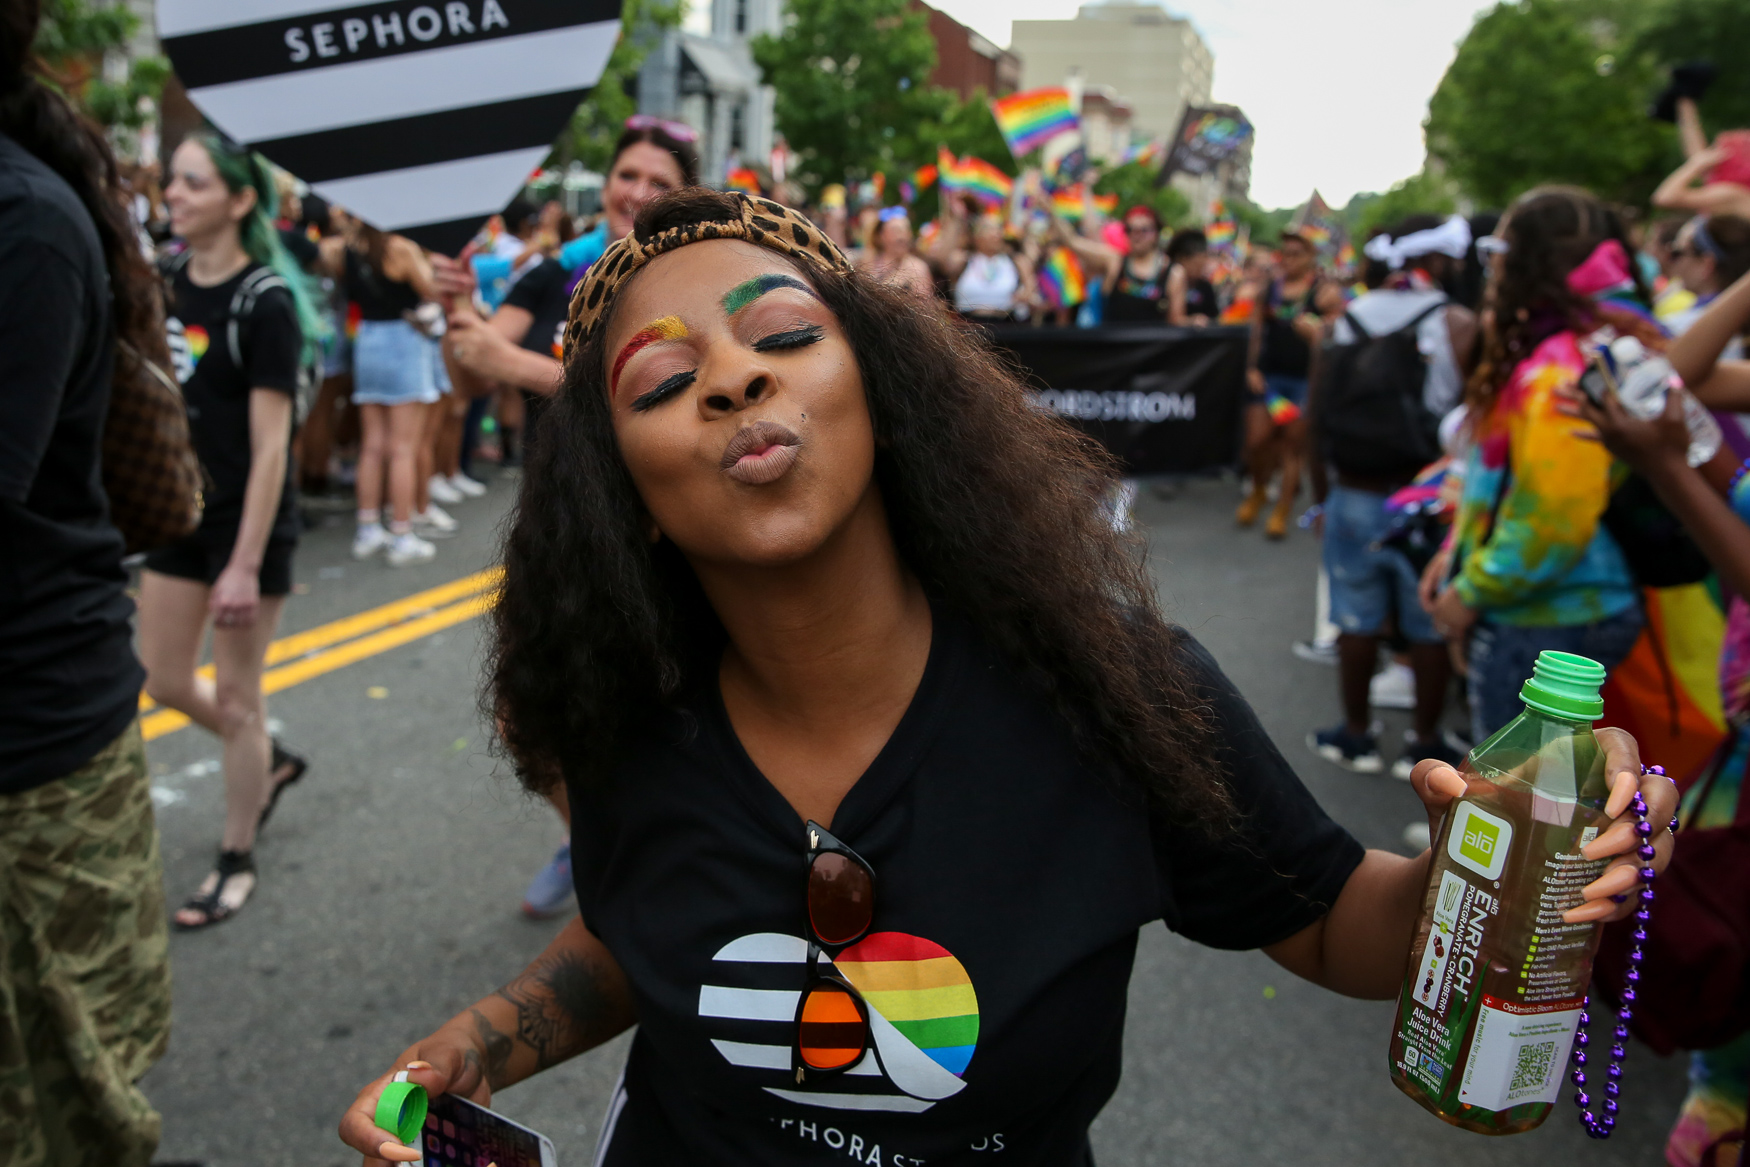 Rainbow eyebrows were spotted on the Sephora float, but there was plenty of other great Pride-themed makeup around!{&nbsp;} (Amanda Andrade-Rhoades/DC Refined)<p></p>